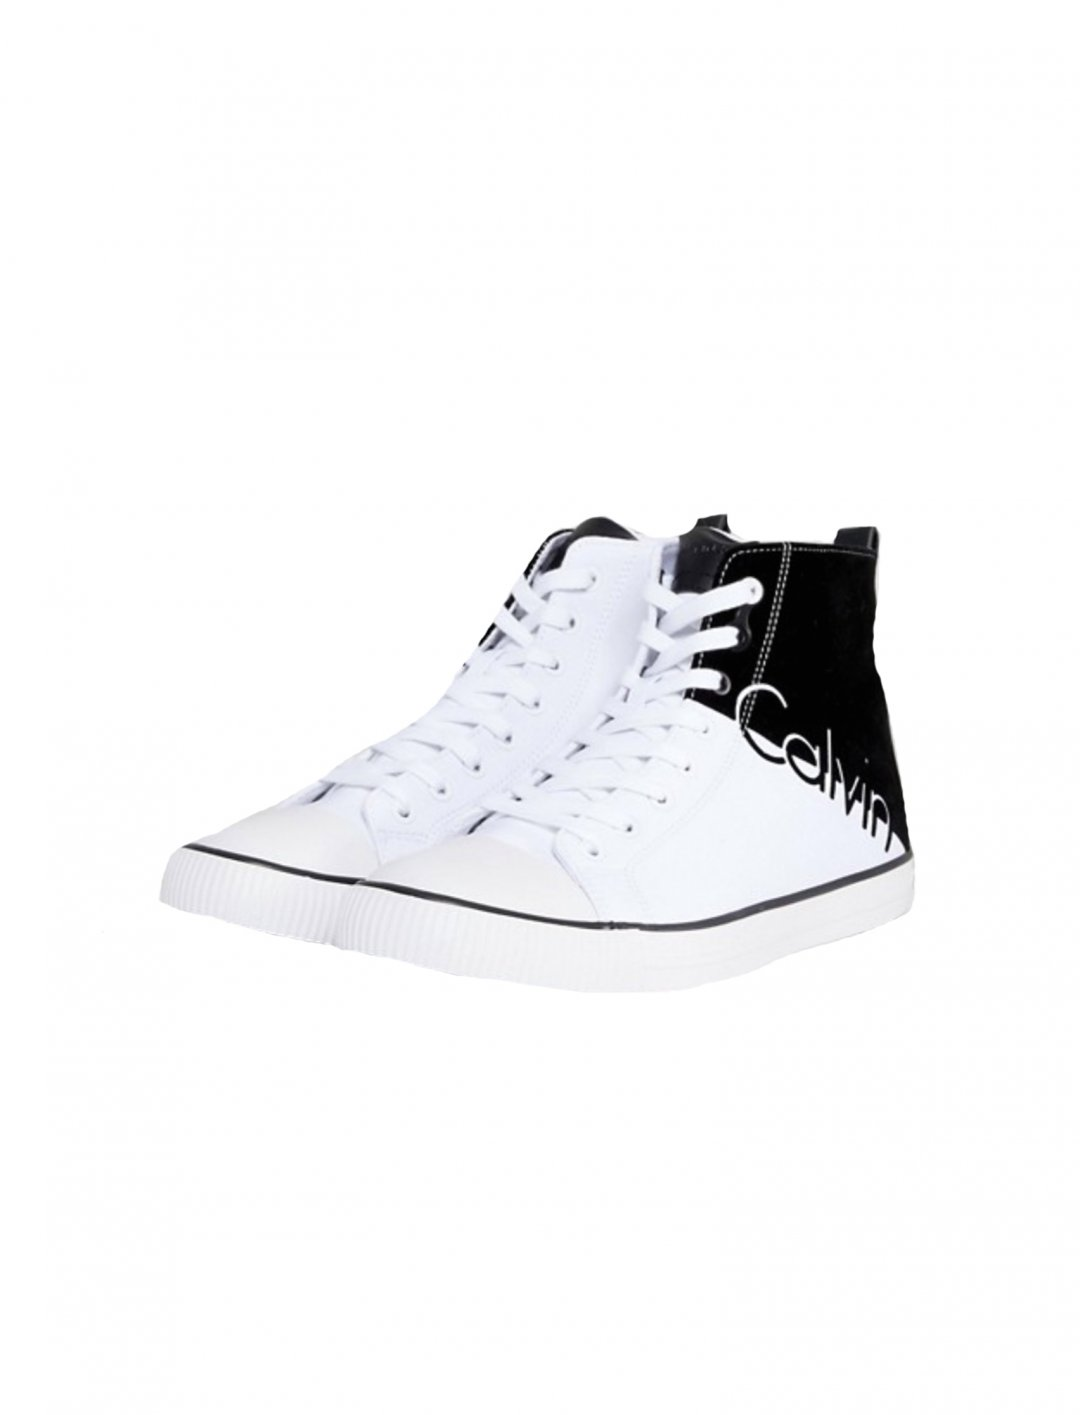 "Calvin Klein Trainers {""id"":12,""product_section_id"":1,""name"":""Shoes"",""order"":12} Calvin Klein"